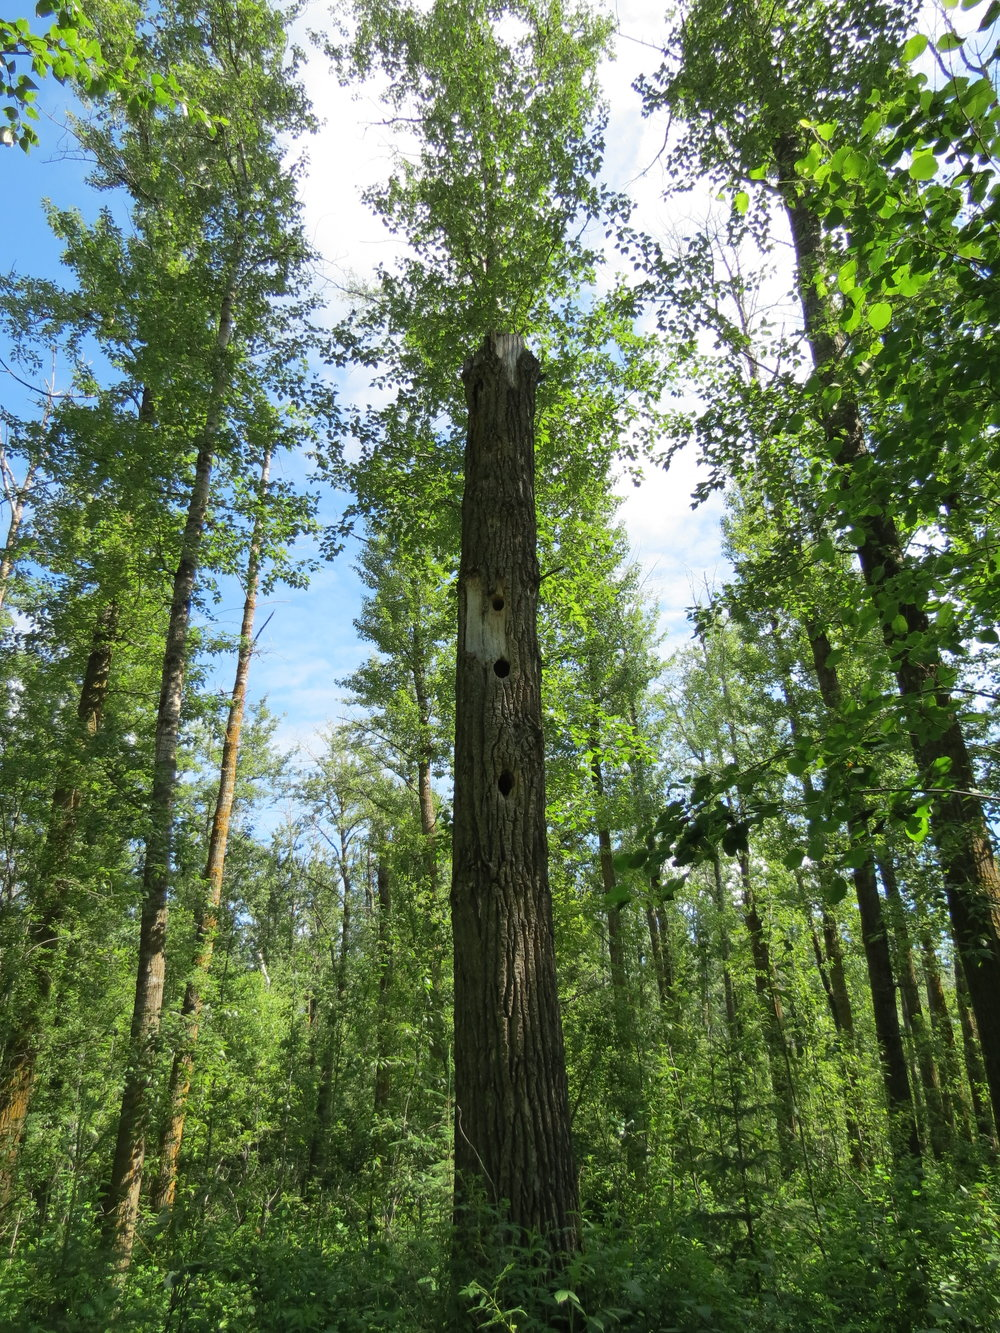 Snag providing habitat for many creatures